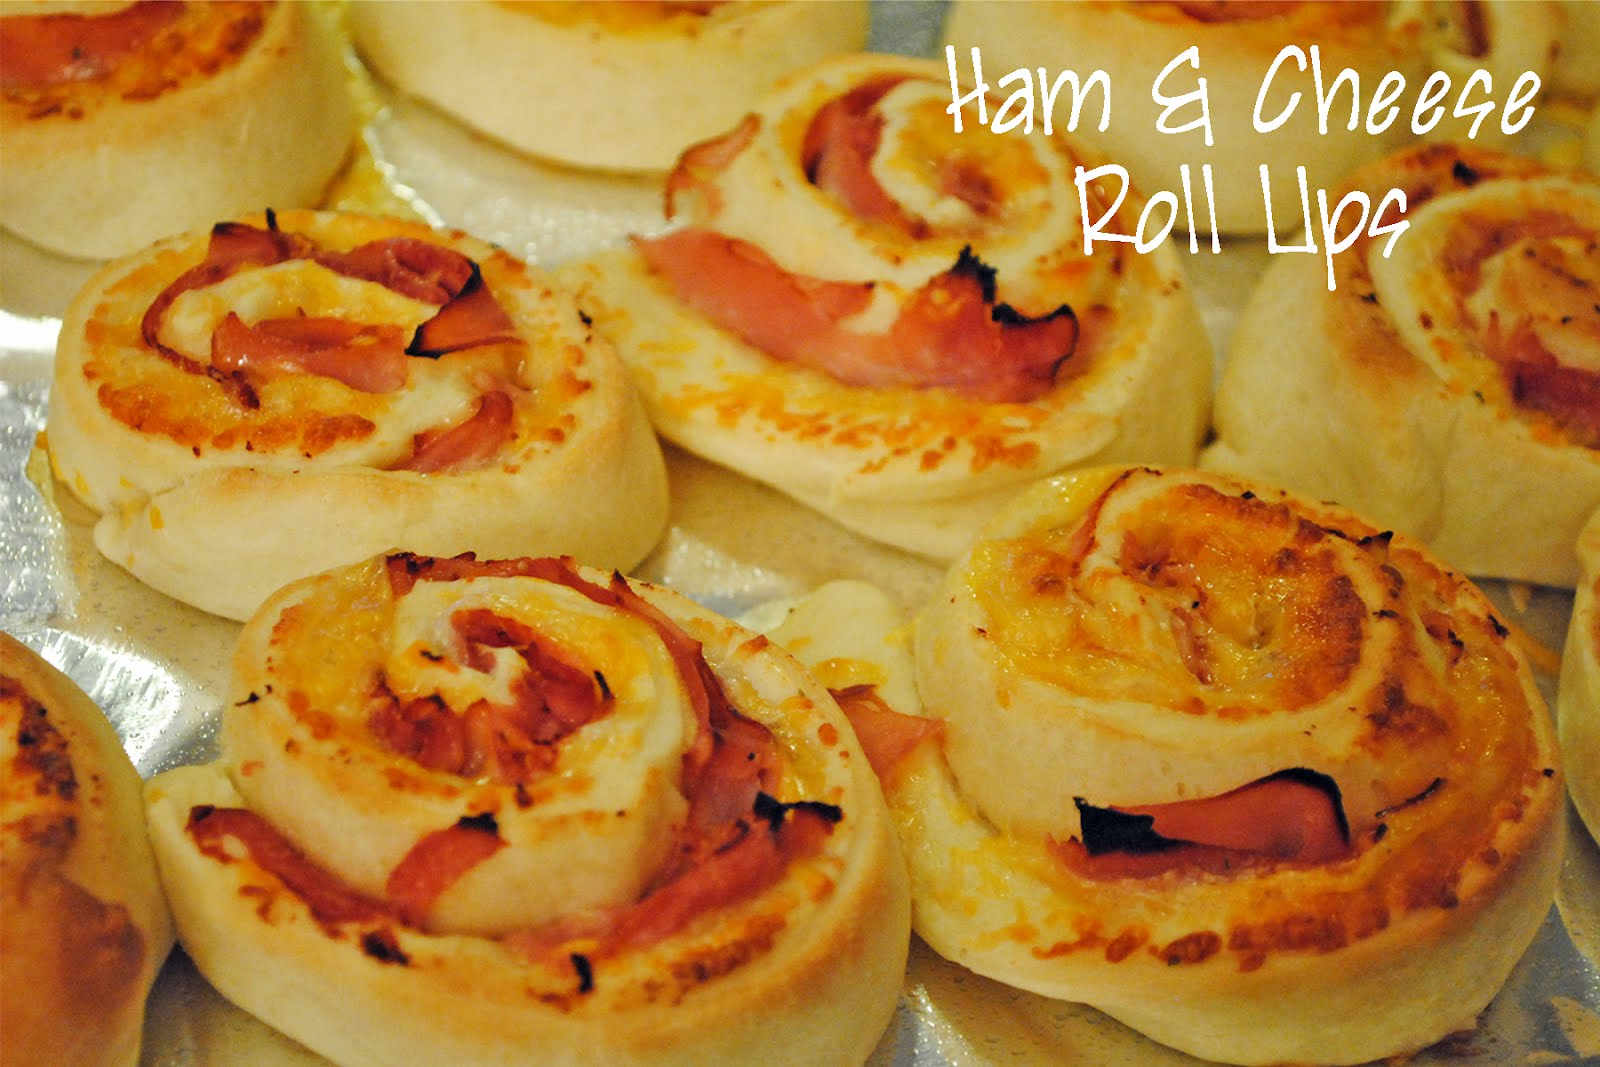 18 rolls ham and cheese sticky buns mrfood com margaret s baked ham ...